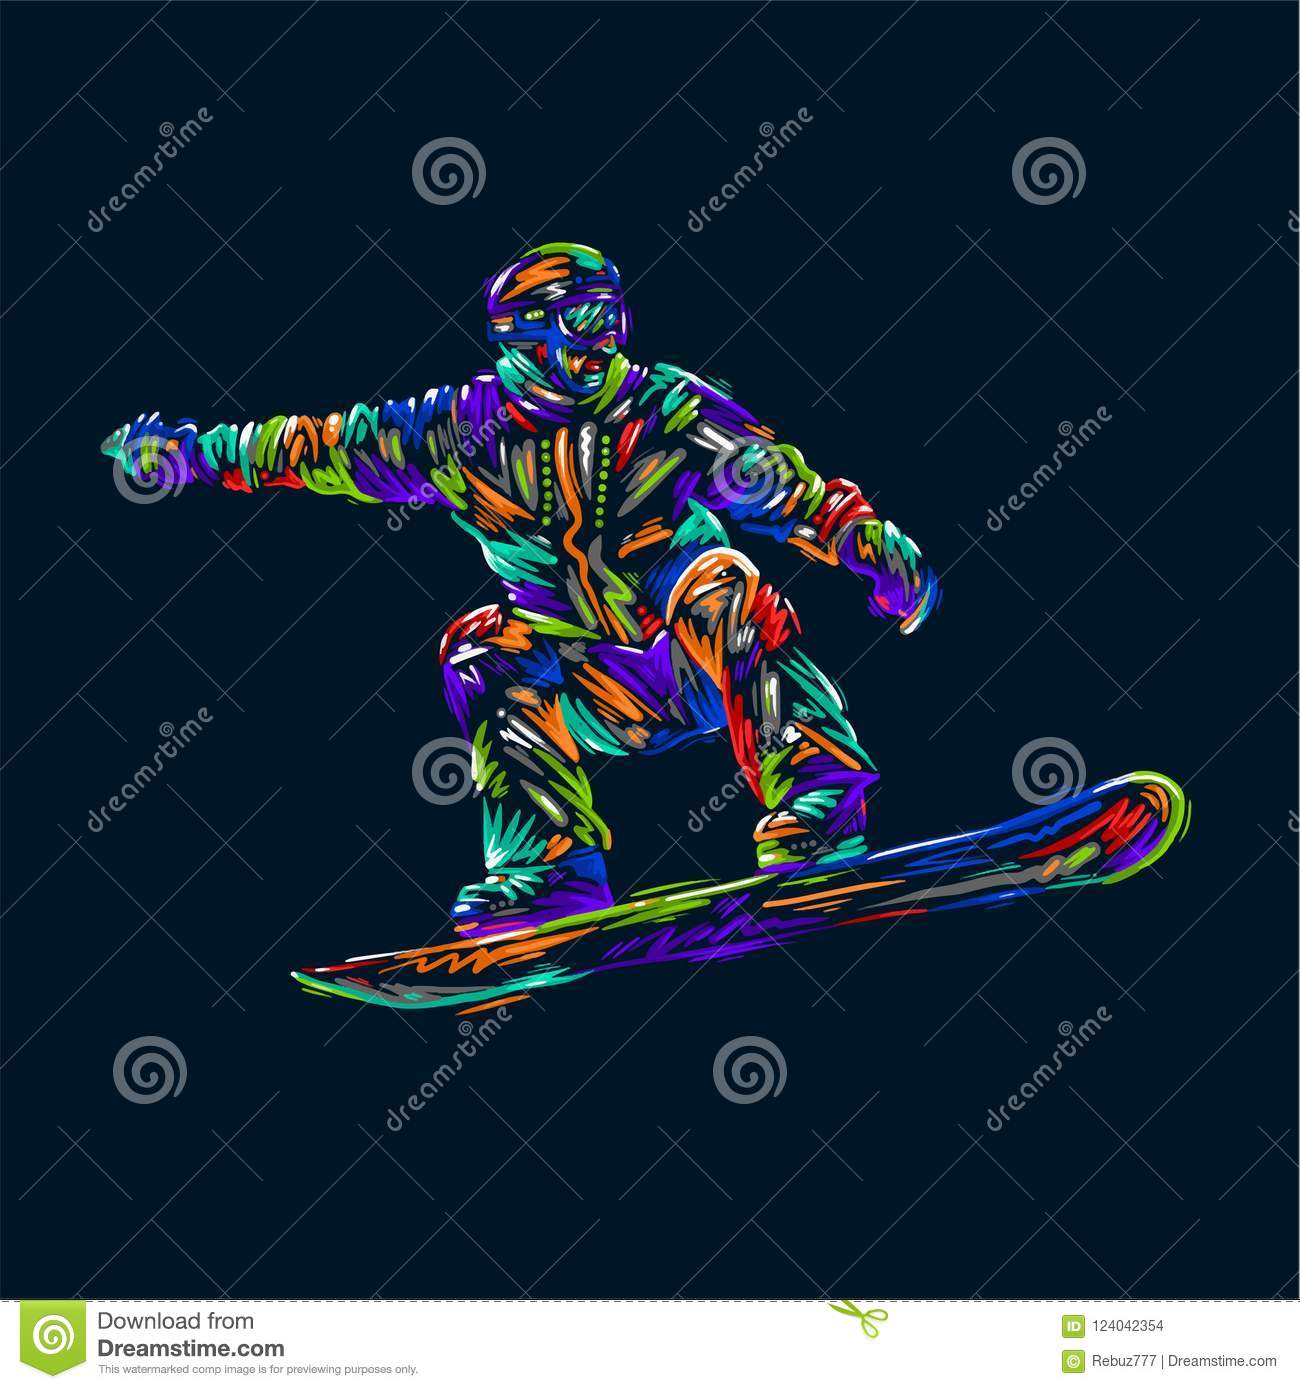 Colored hand drawing sketch snowboarder on a grunge background. Vector illustration snowboard print design art